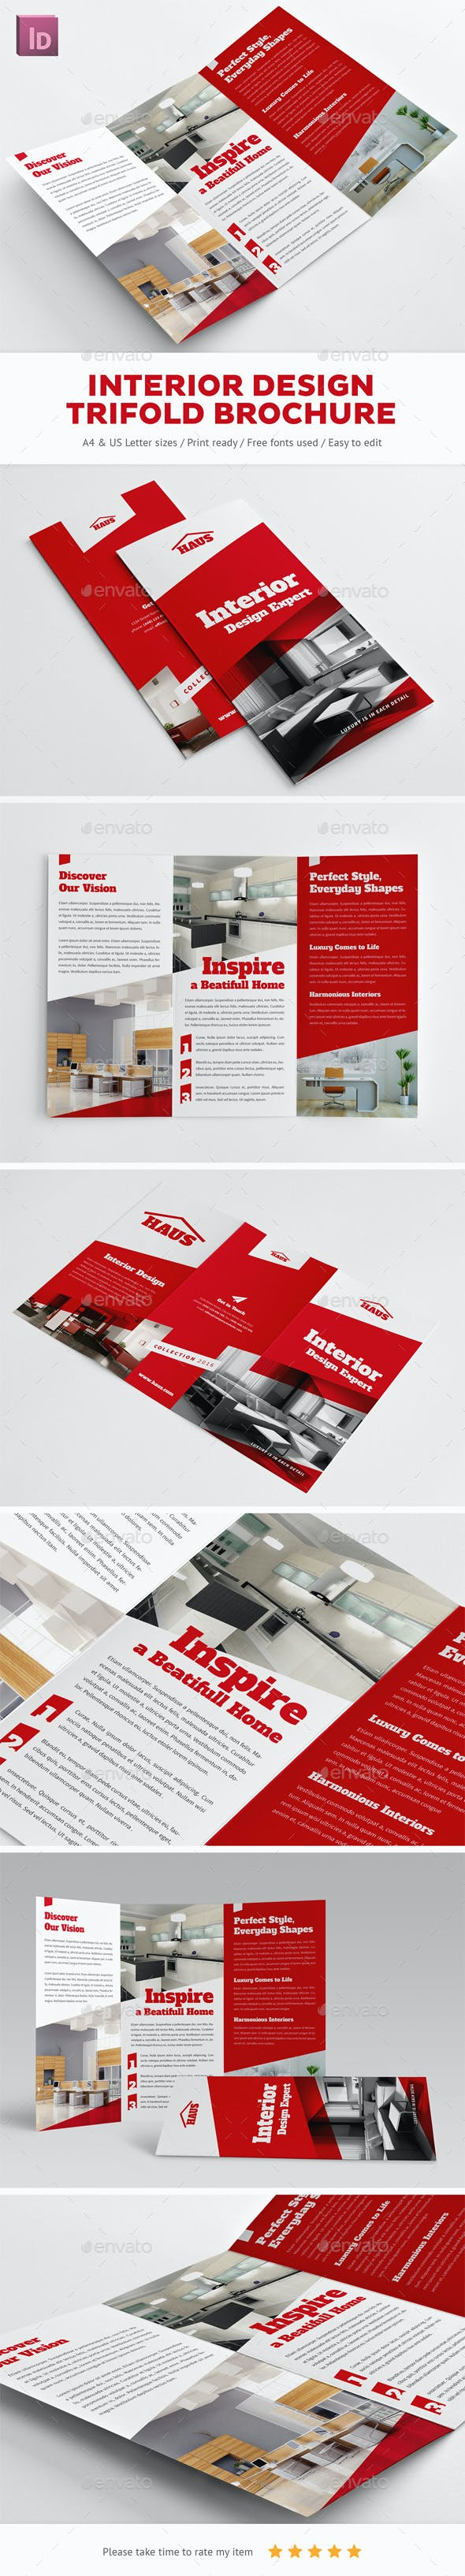 interior design trifold brochure by snowboy graphicriver